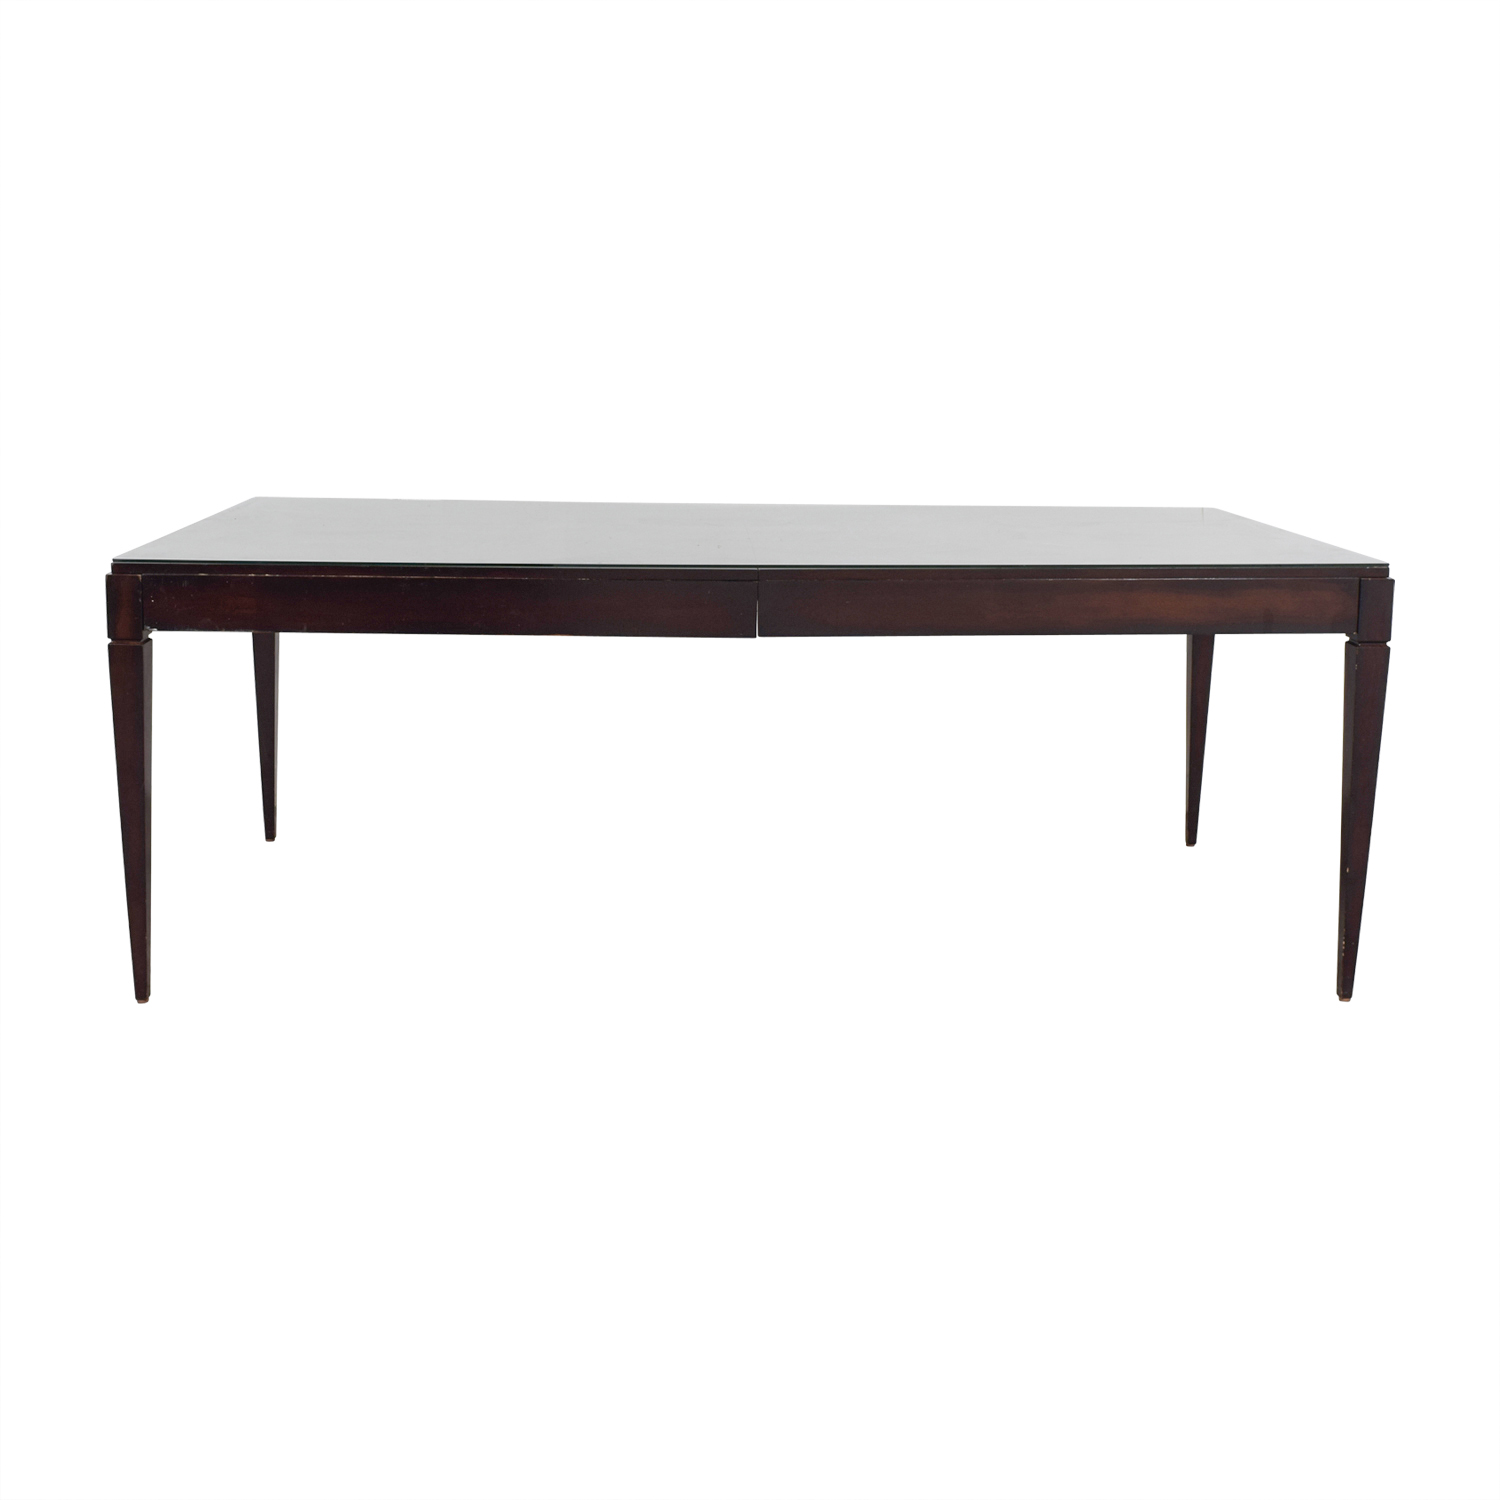 Restoration Hardware Restoration Hardware Cherry Table with Glass Top